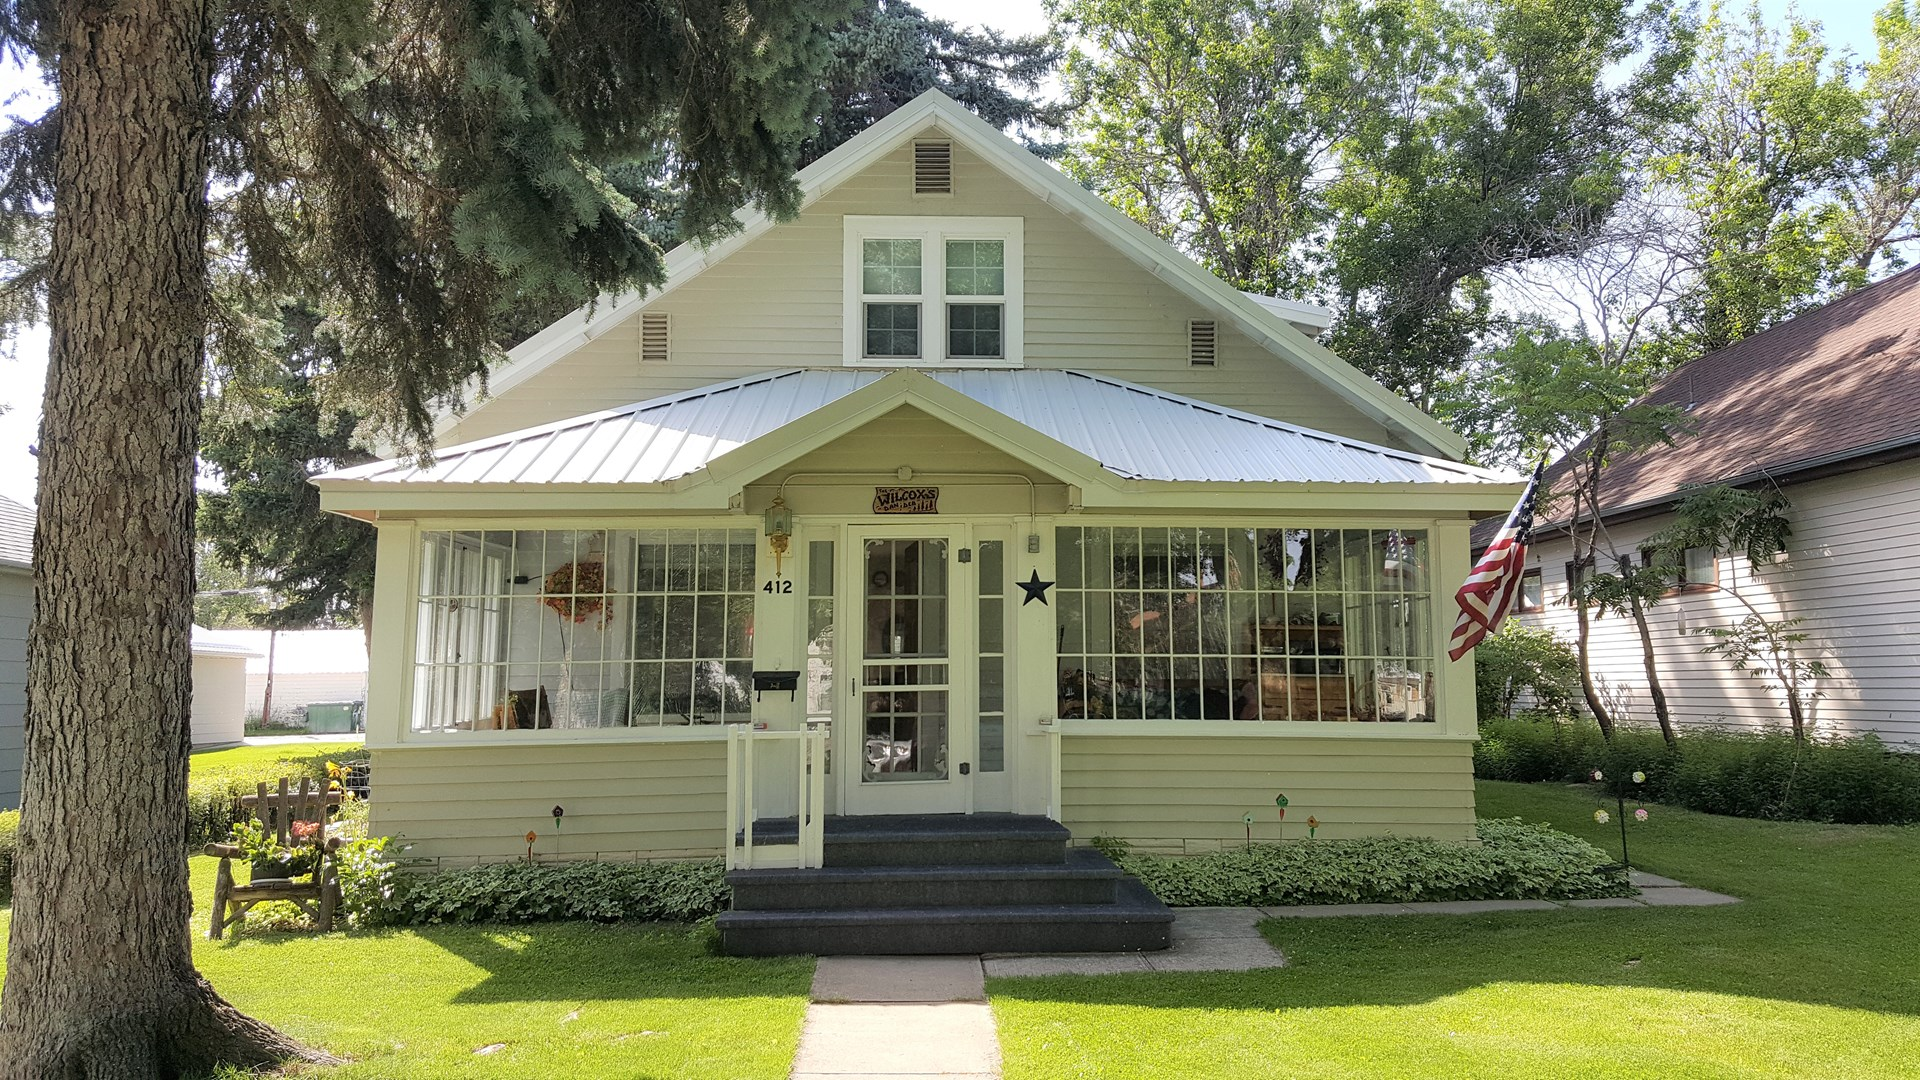 Craftsman Home 4 bed 2 bath Conrad MT $200,000